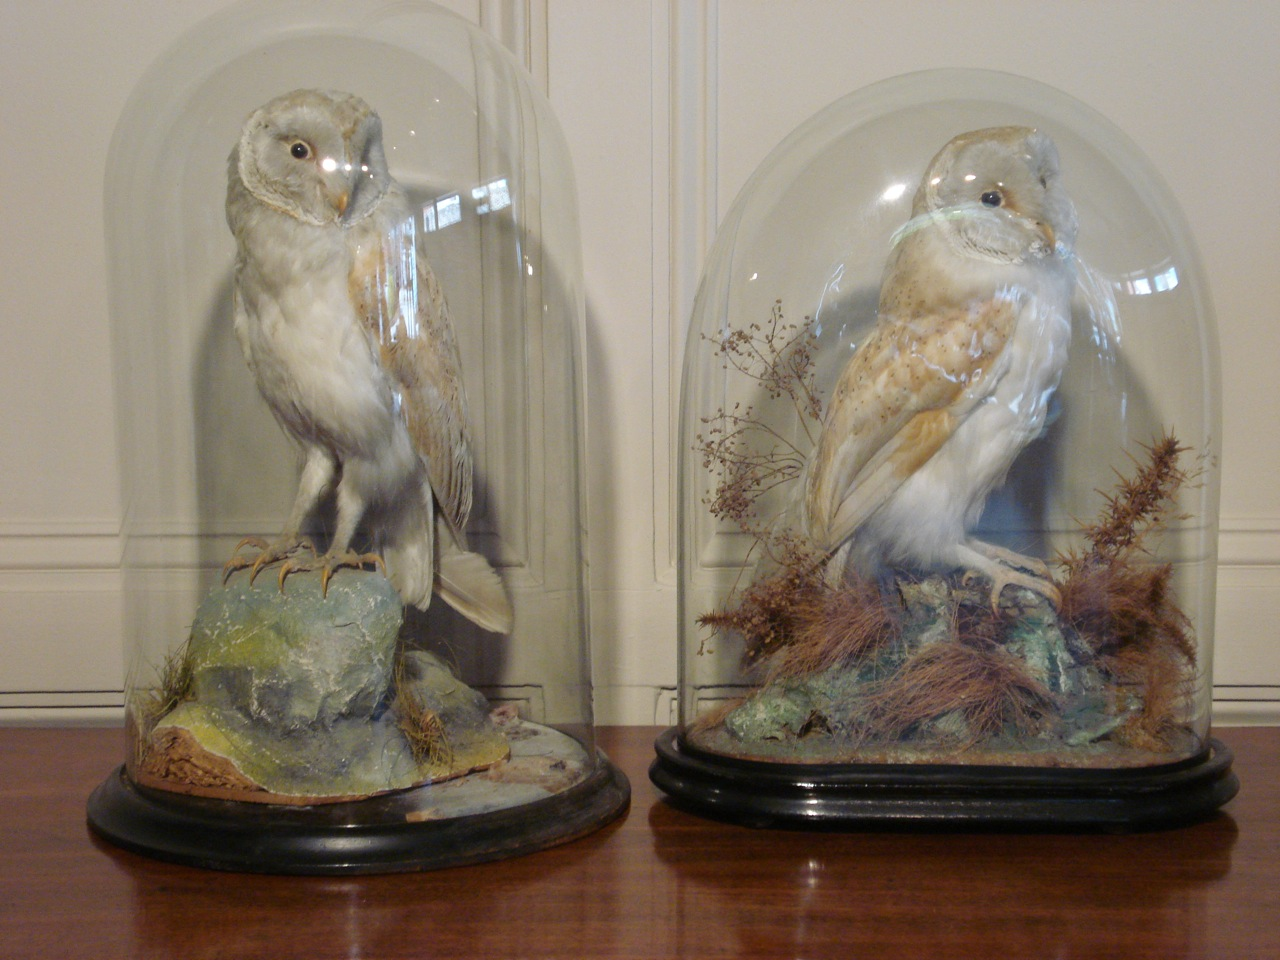 SOLD/19TH CENTURY TAXIDERMY OWL IN A GLASS DOME